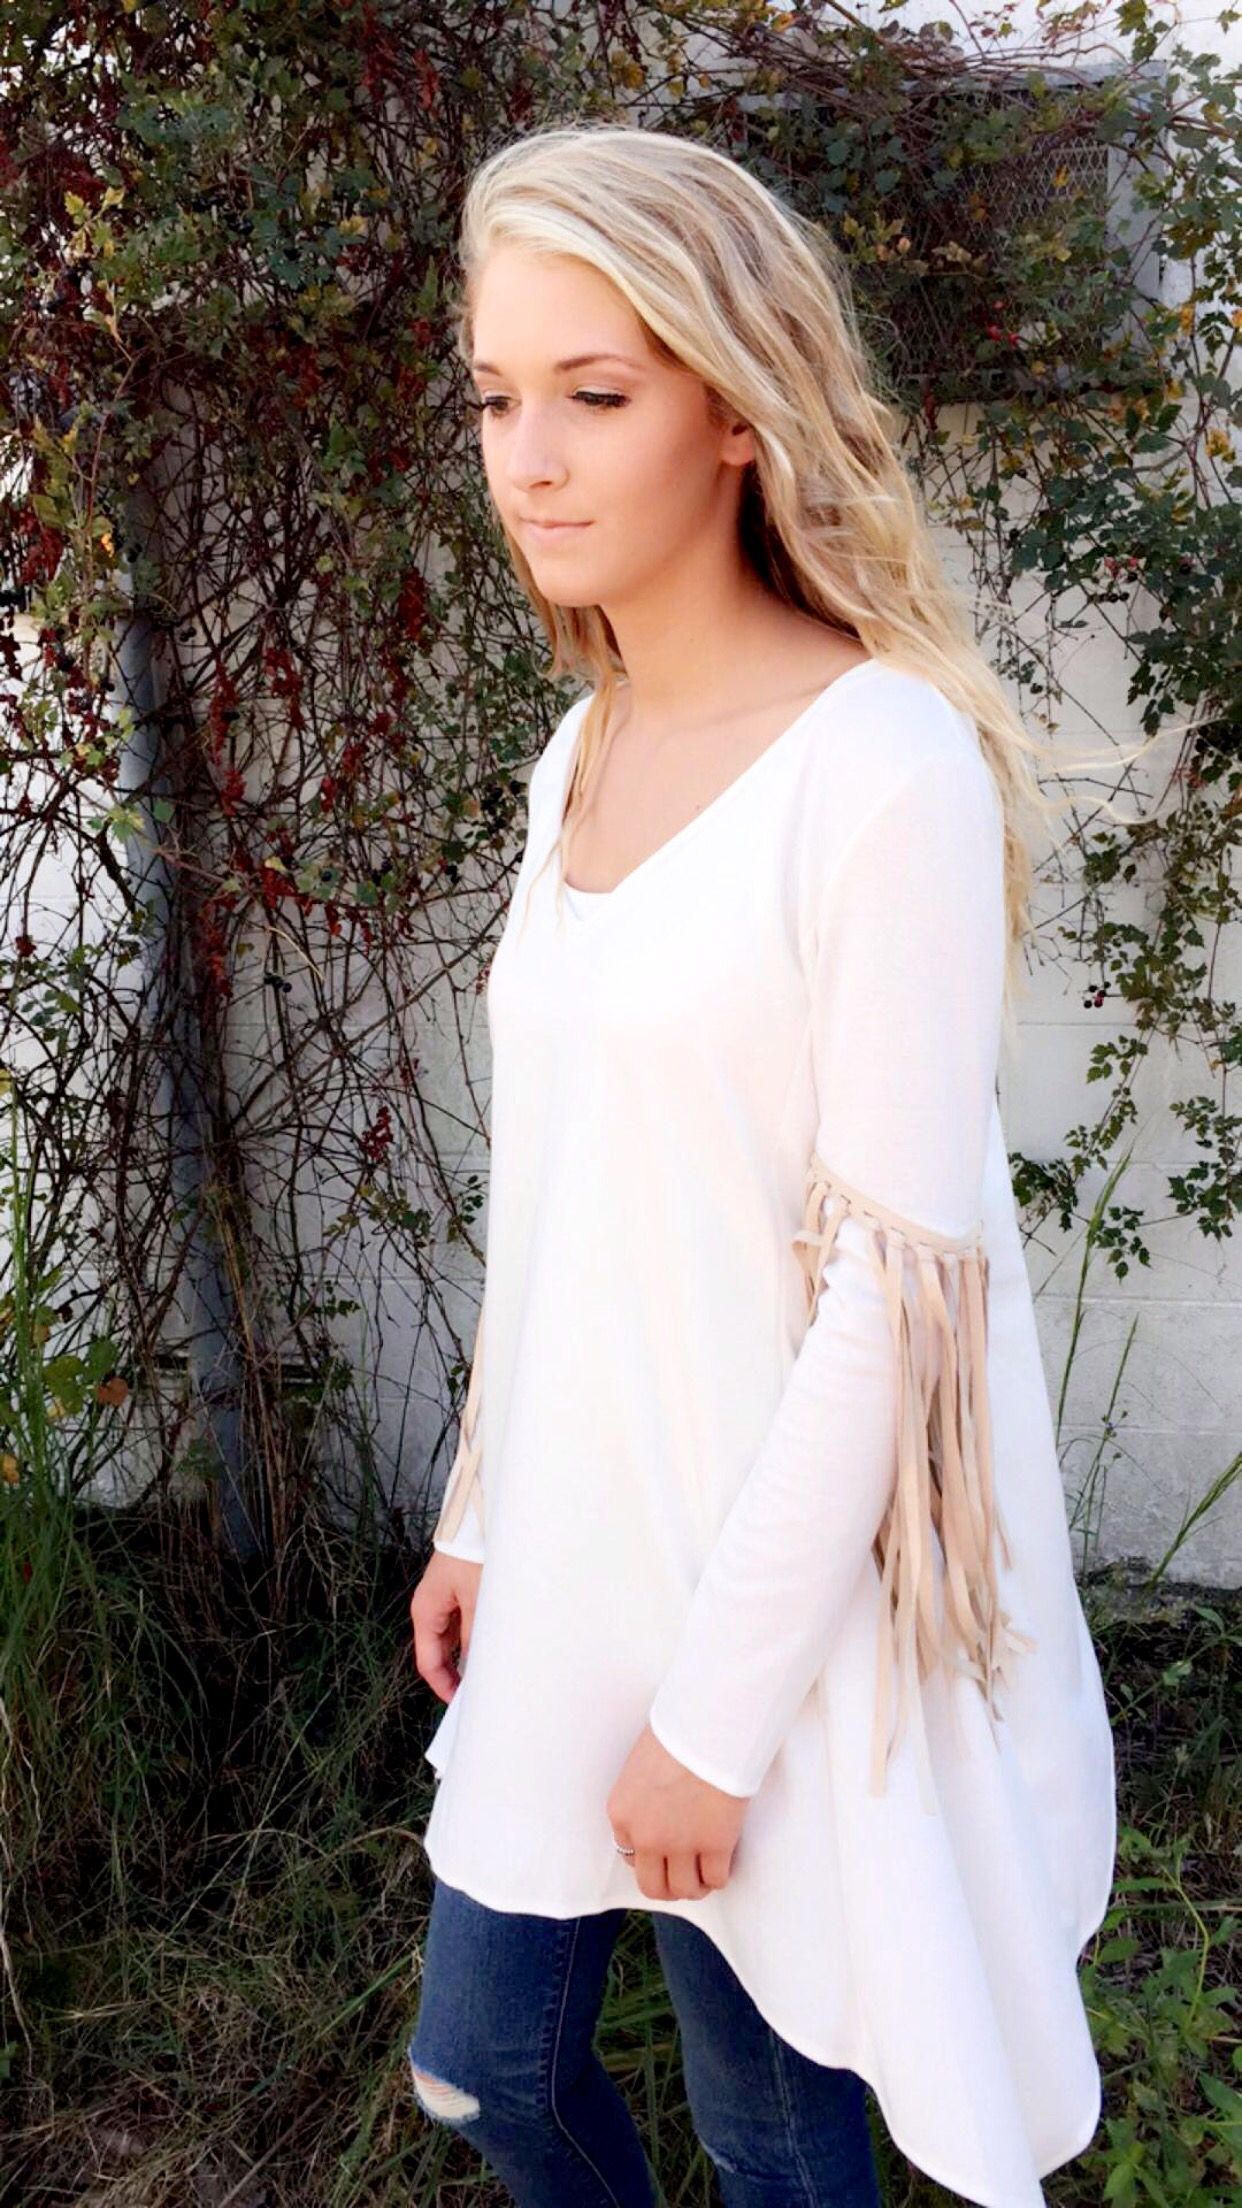 Judith March Winter Nights- Loving this tunic top! #christmasparties #judithmarch #tassels #shopb&b #suede $75.00